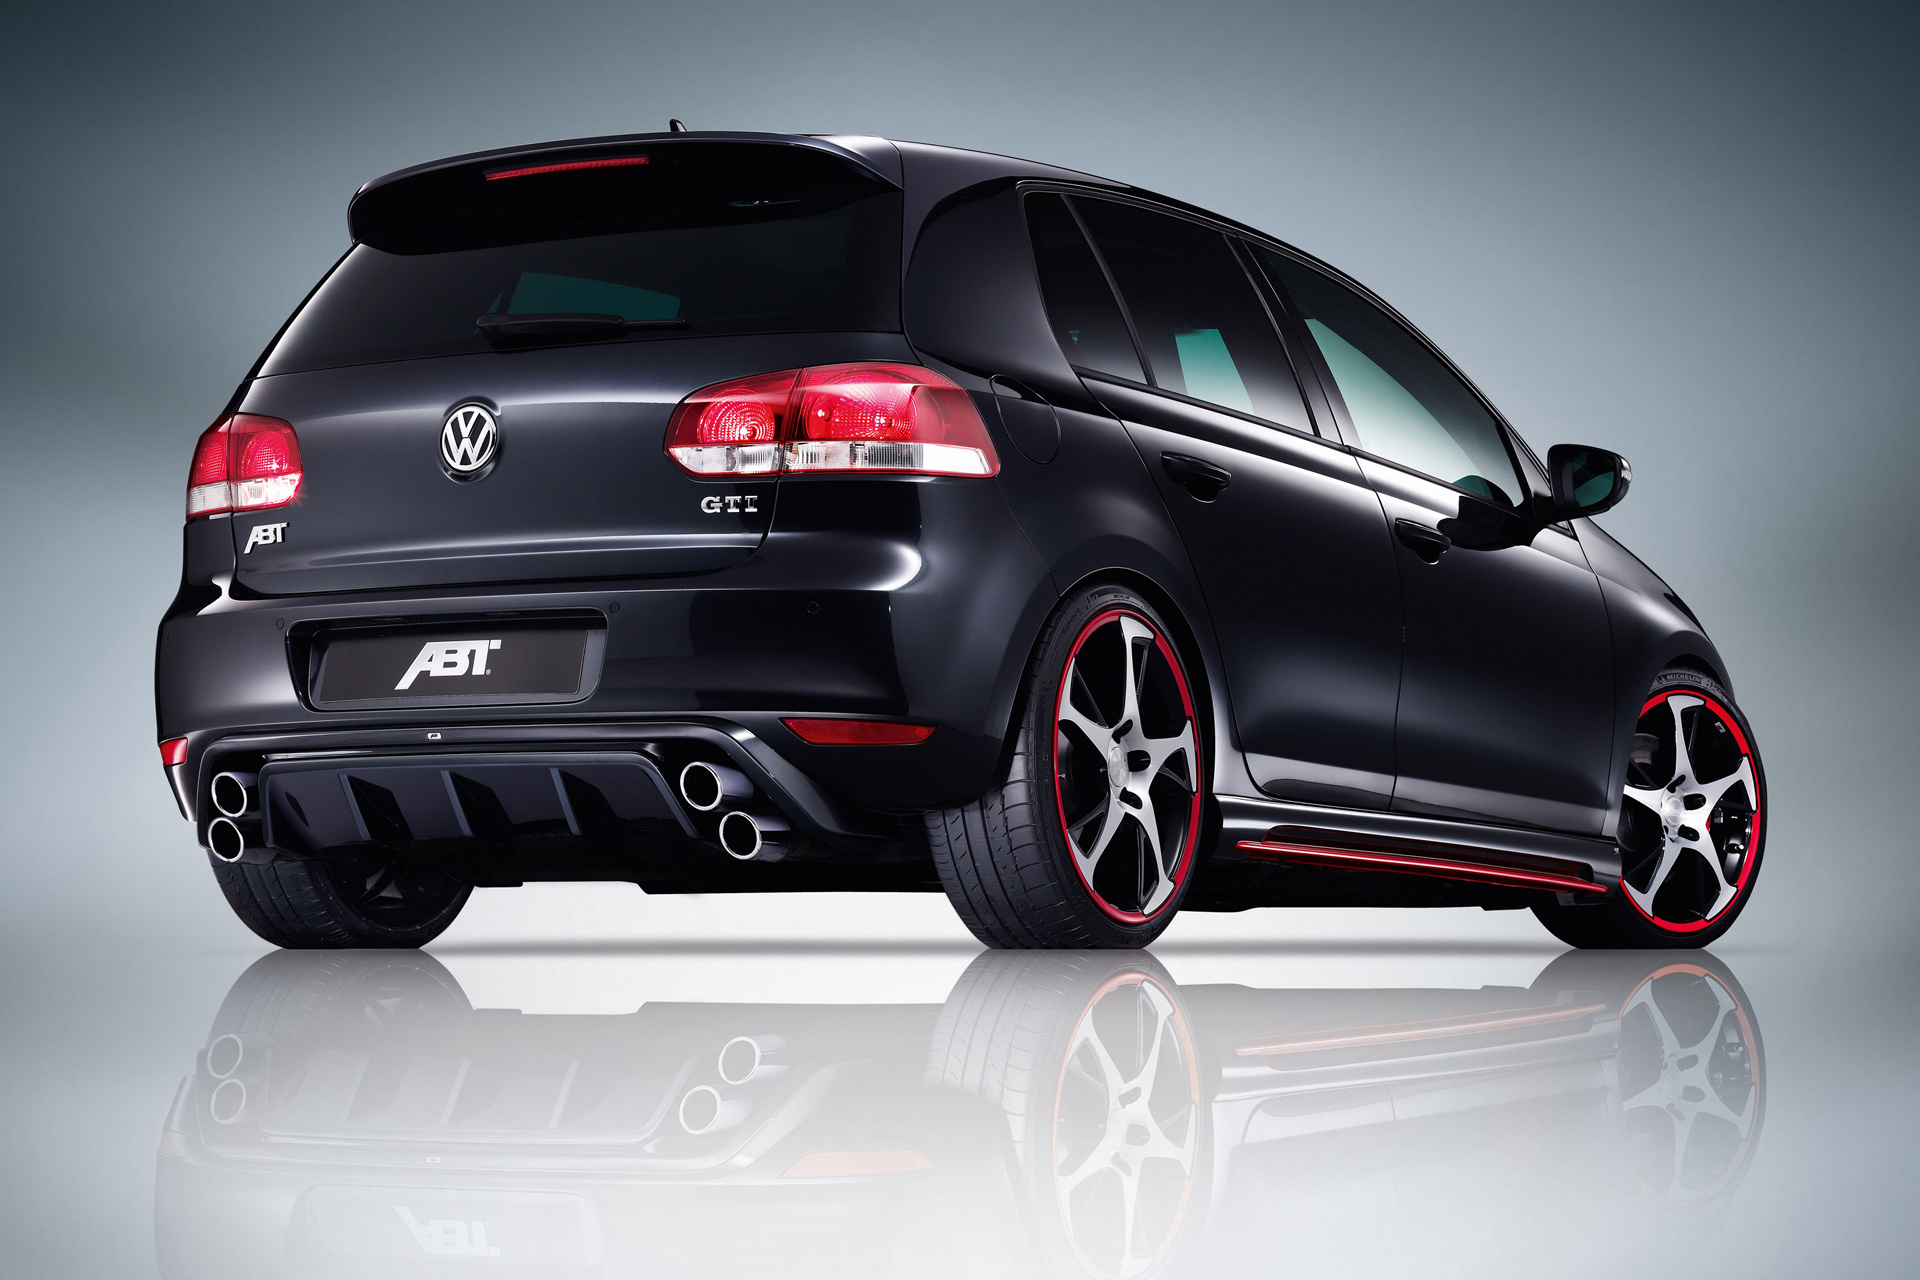 ABT Golf GTI picture # 65897 | ABT photo gallery ...